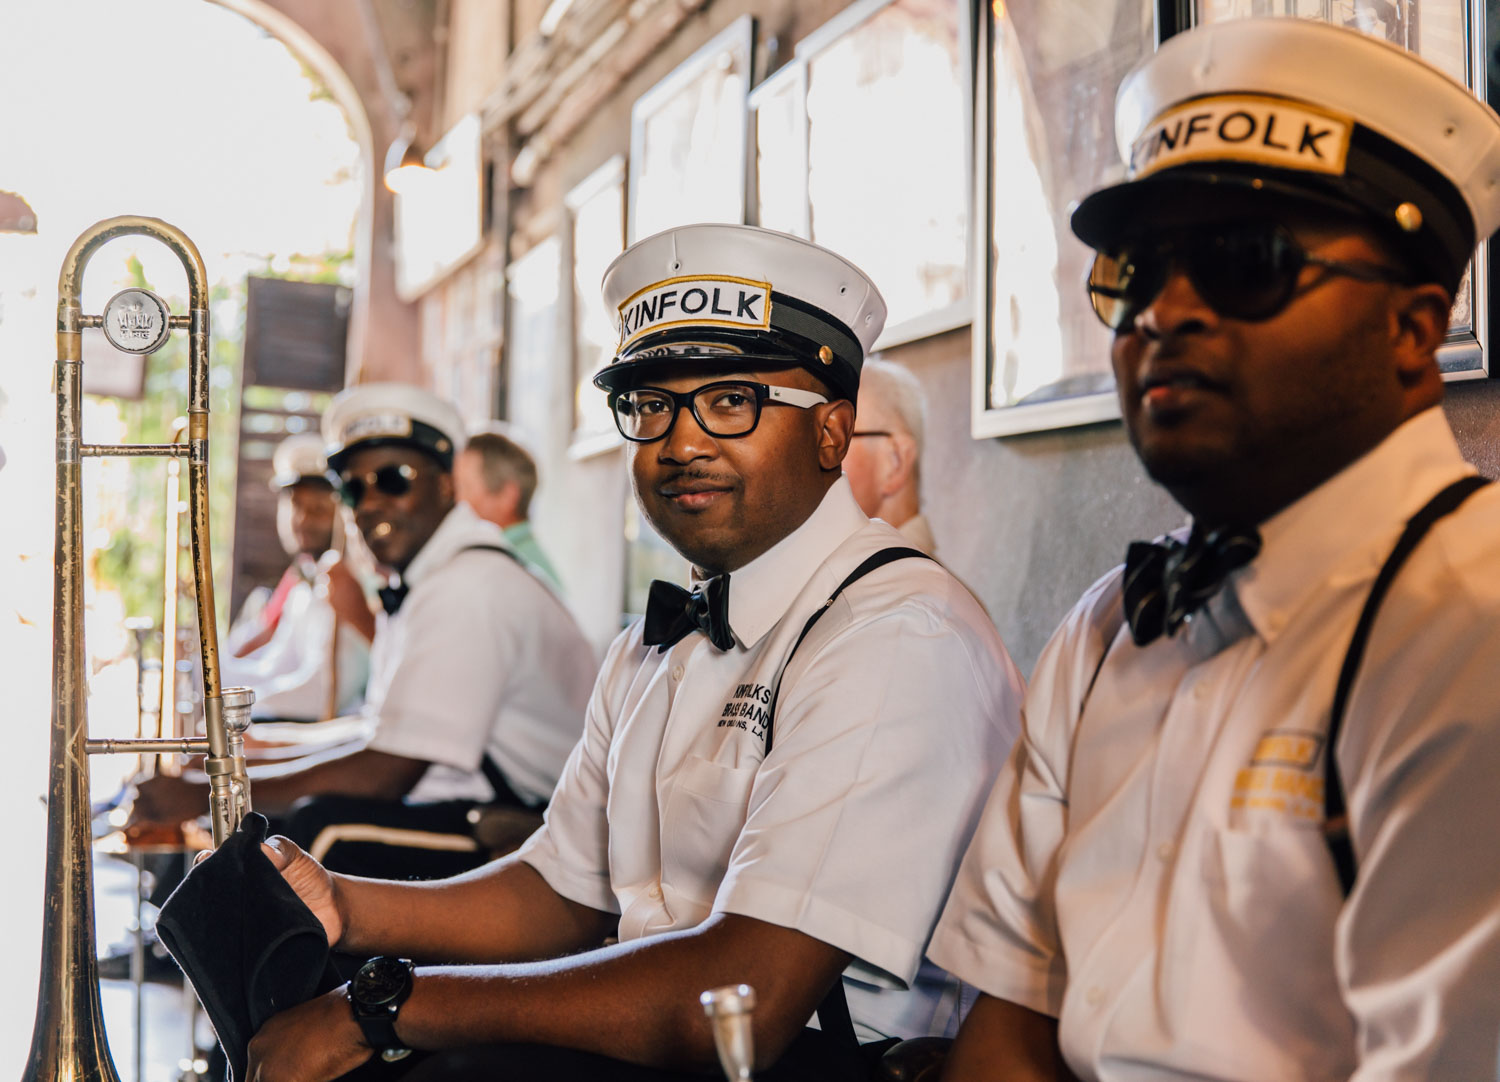 Richard Anderson of the Kinfolk Brass Band and band mates await their call to the stage at the historic Preservation Hall.